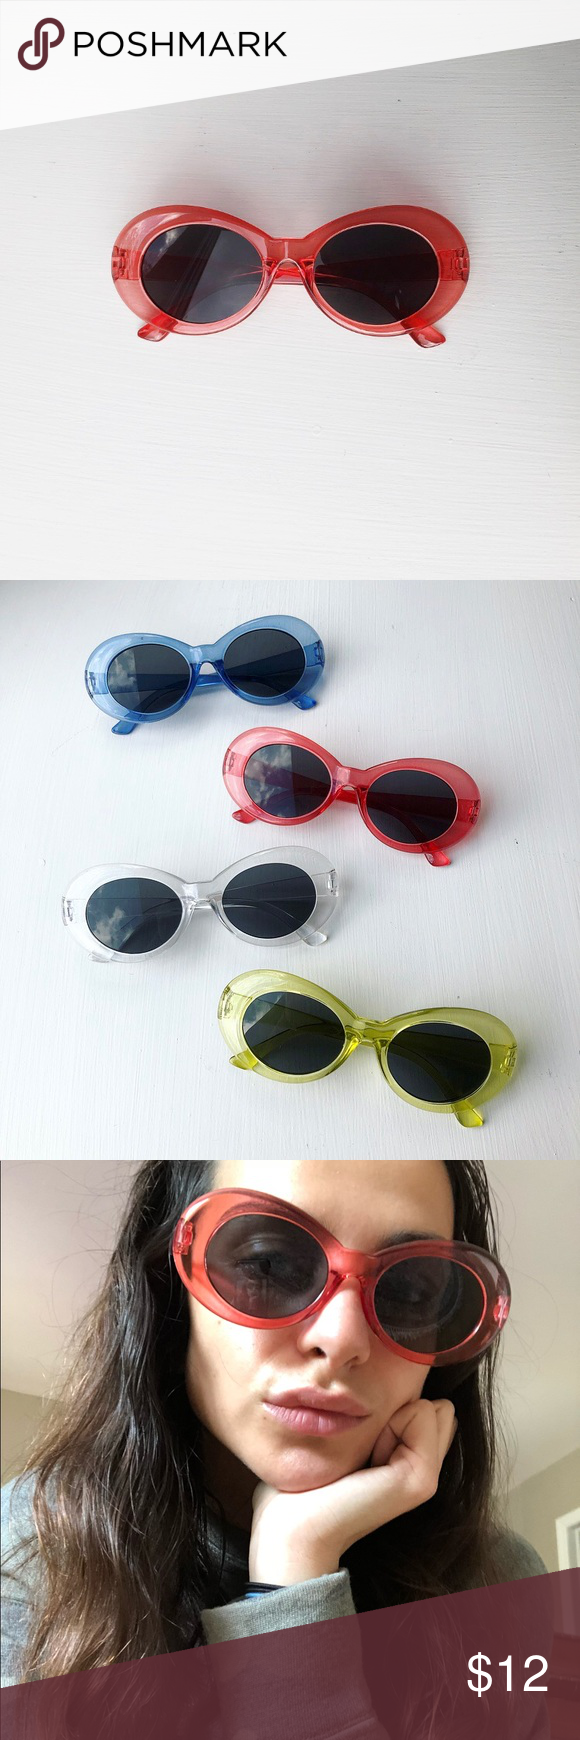 Red Transparent Sunglasses Limited Edition Kurt Cobain Glasses 90s Oval Clout Goggles Transparent Red Transparent Sunglasses Sunglasses Vintage Red Jelly